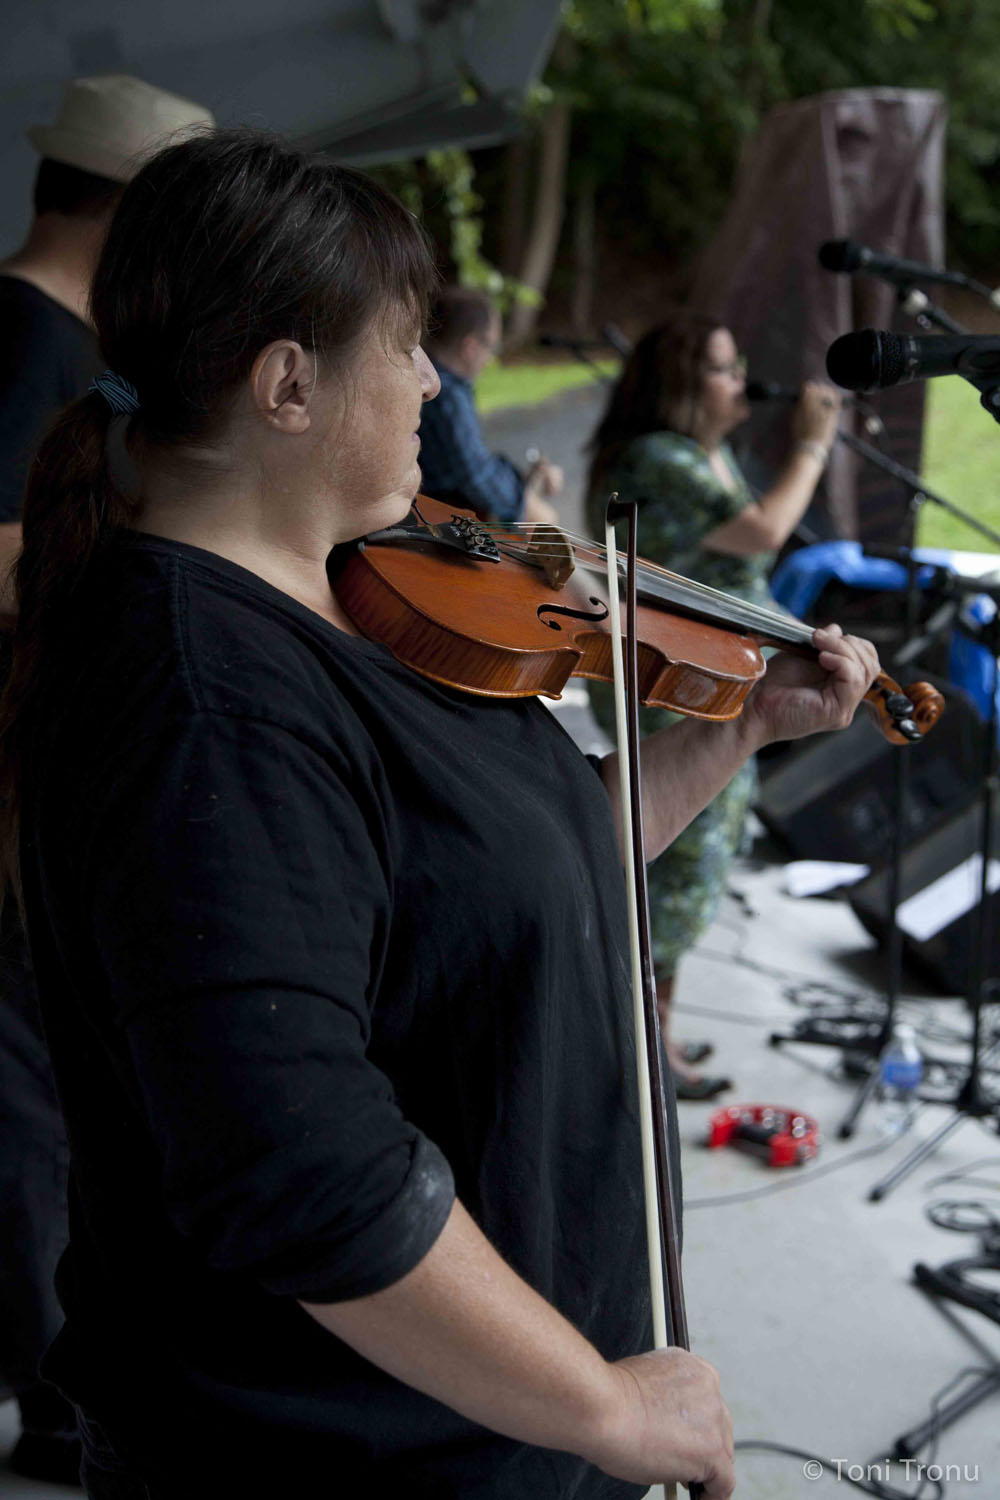 fiddle-debbie-gitlin-stained-glass-canoe-band-stokes-stomp-arts-council-festival-danbury-north-carolina-live-music-local-art-photography.jpg